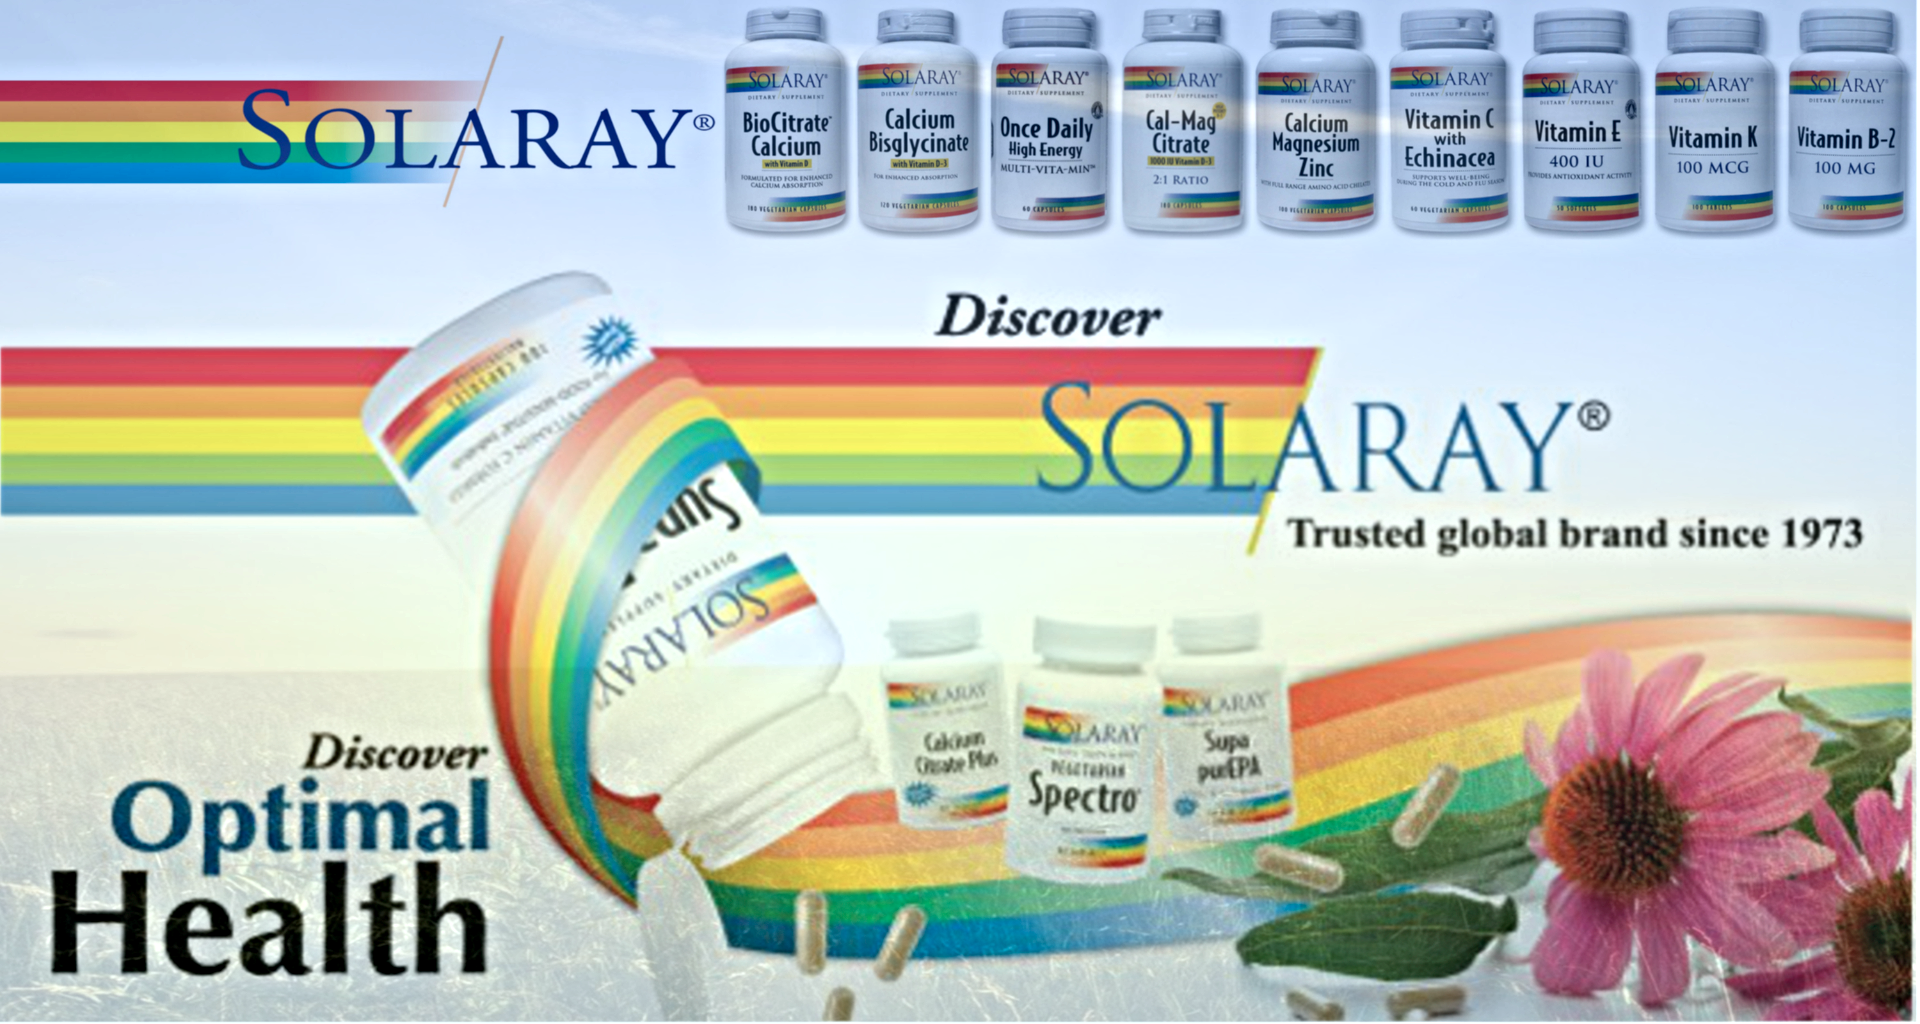 SOLARAY Supplements